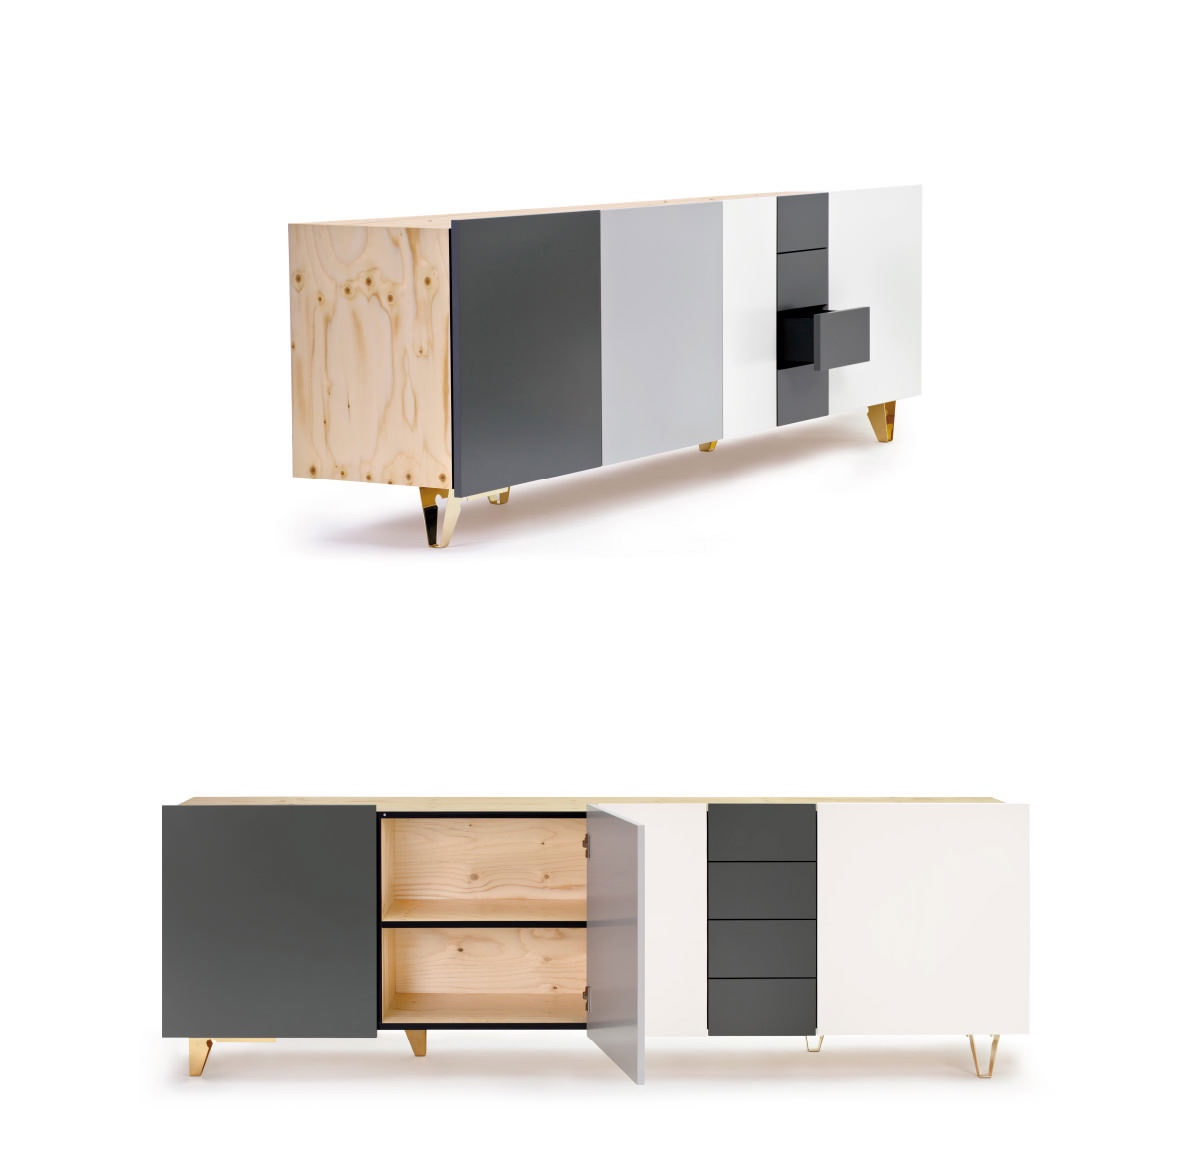 Supergrau® Starbuck Sideboard. Image courtesy of Supergrau®.